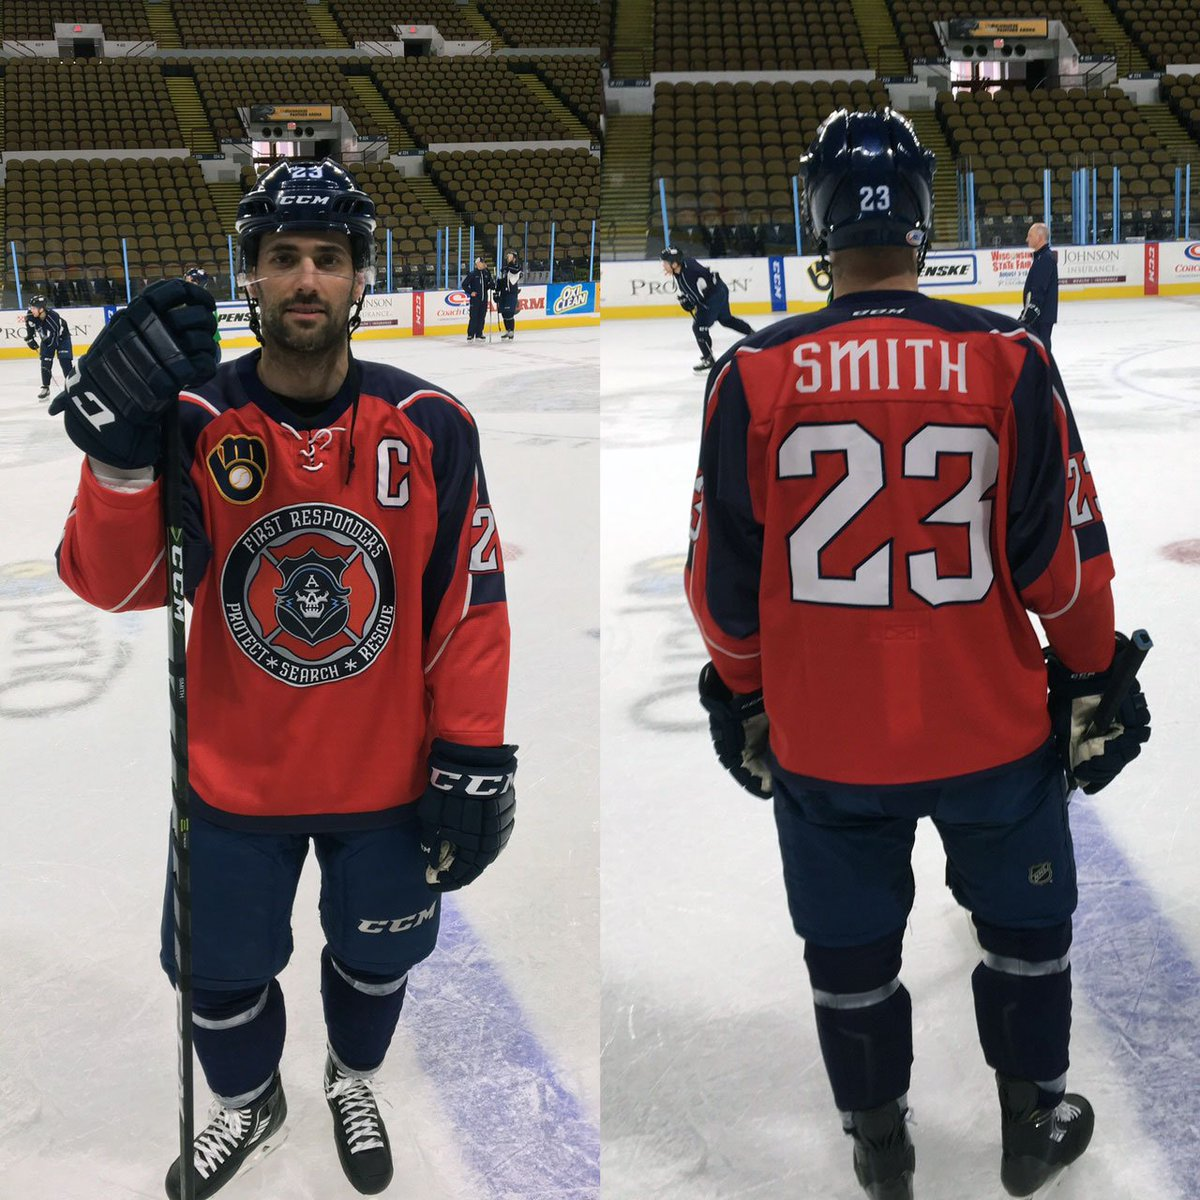 The First Responder jerseys we'll be wearing on Saturday, as modeled by the Captain! Make one your's!--> https://t.co/PDeywpHZGC https://t.co/A2BxdhrYk3